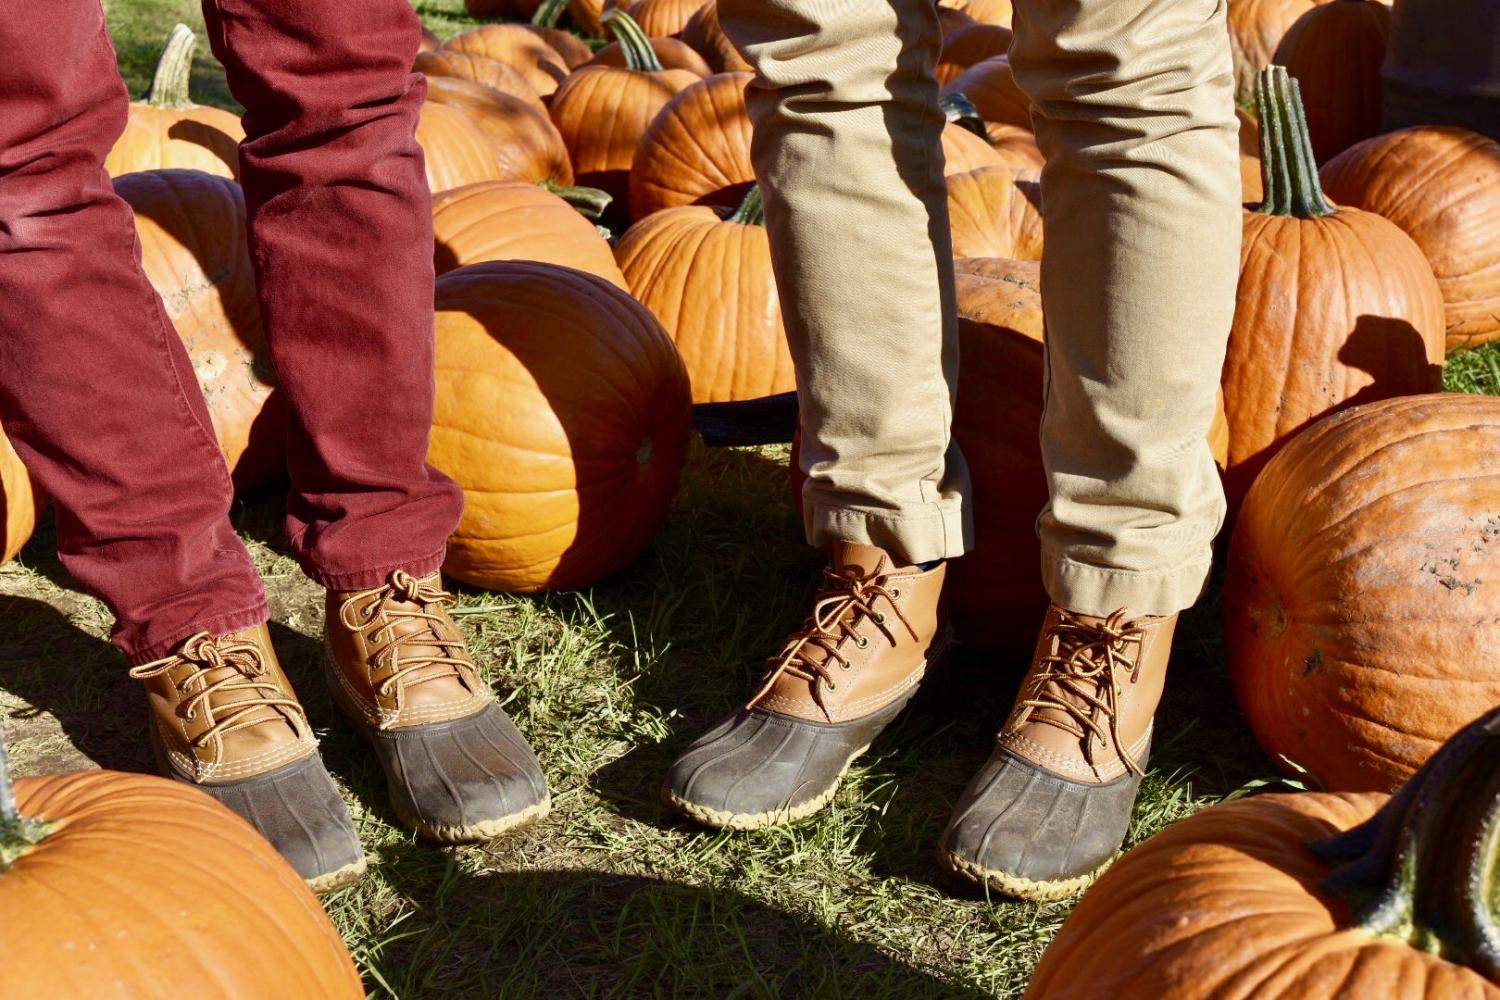 As the hot summer comes to a close; the coming of autumn brings the return of the chilly weather. That means the return of pants, sweaters, jeans, and boots and fall traditions such as Halloween and visits to the pumpkin farm.